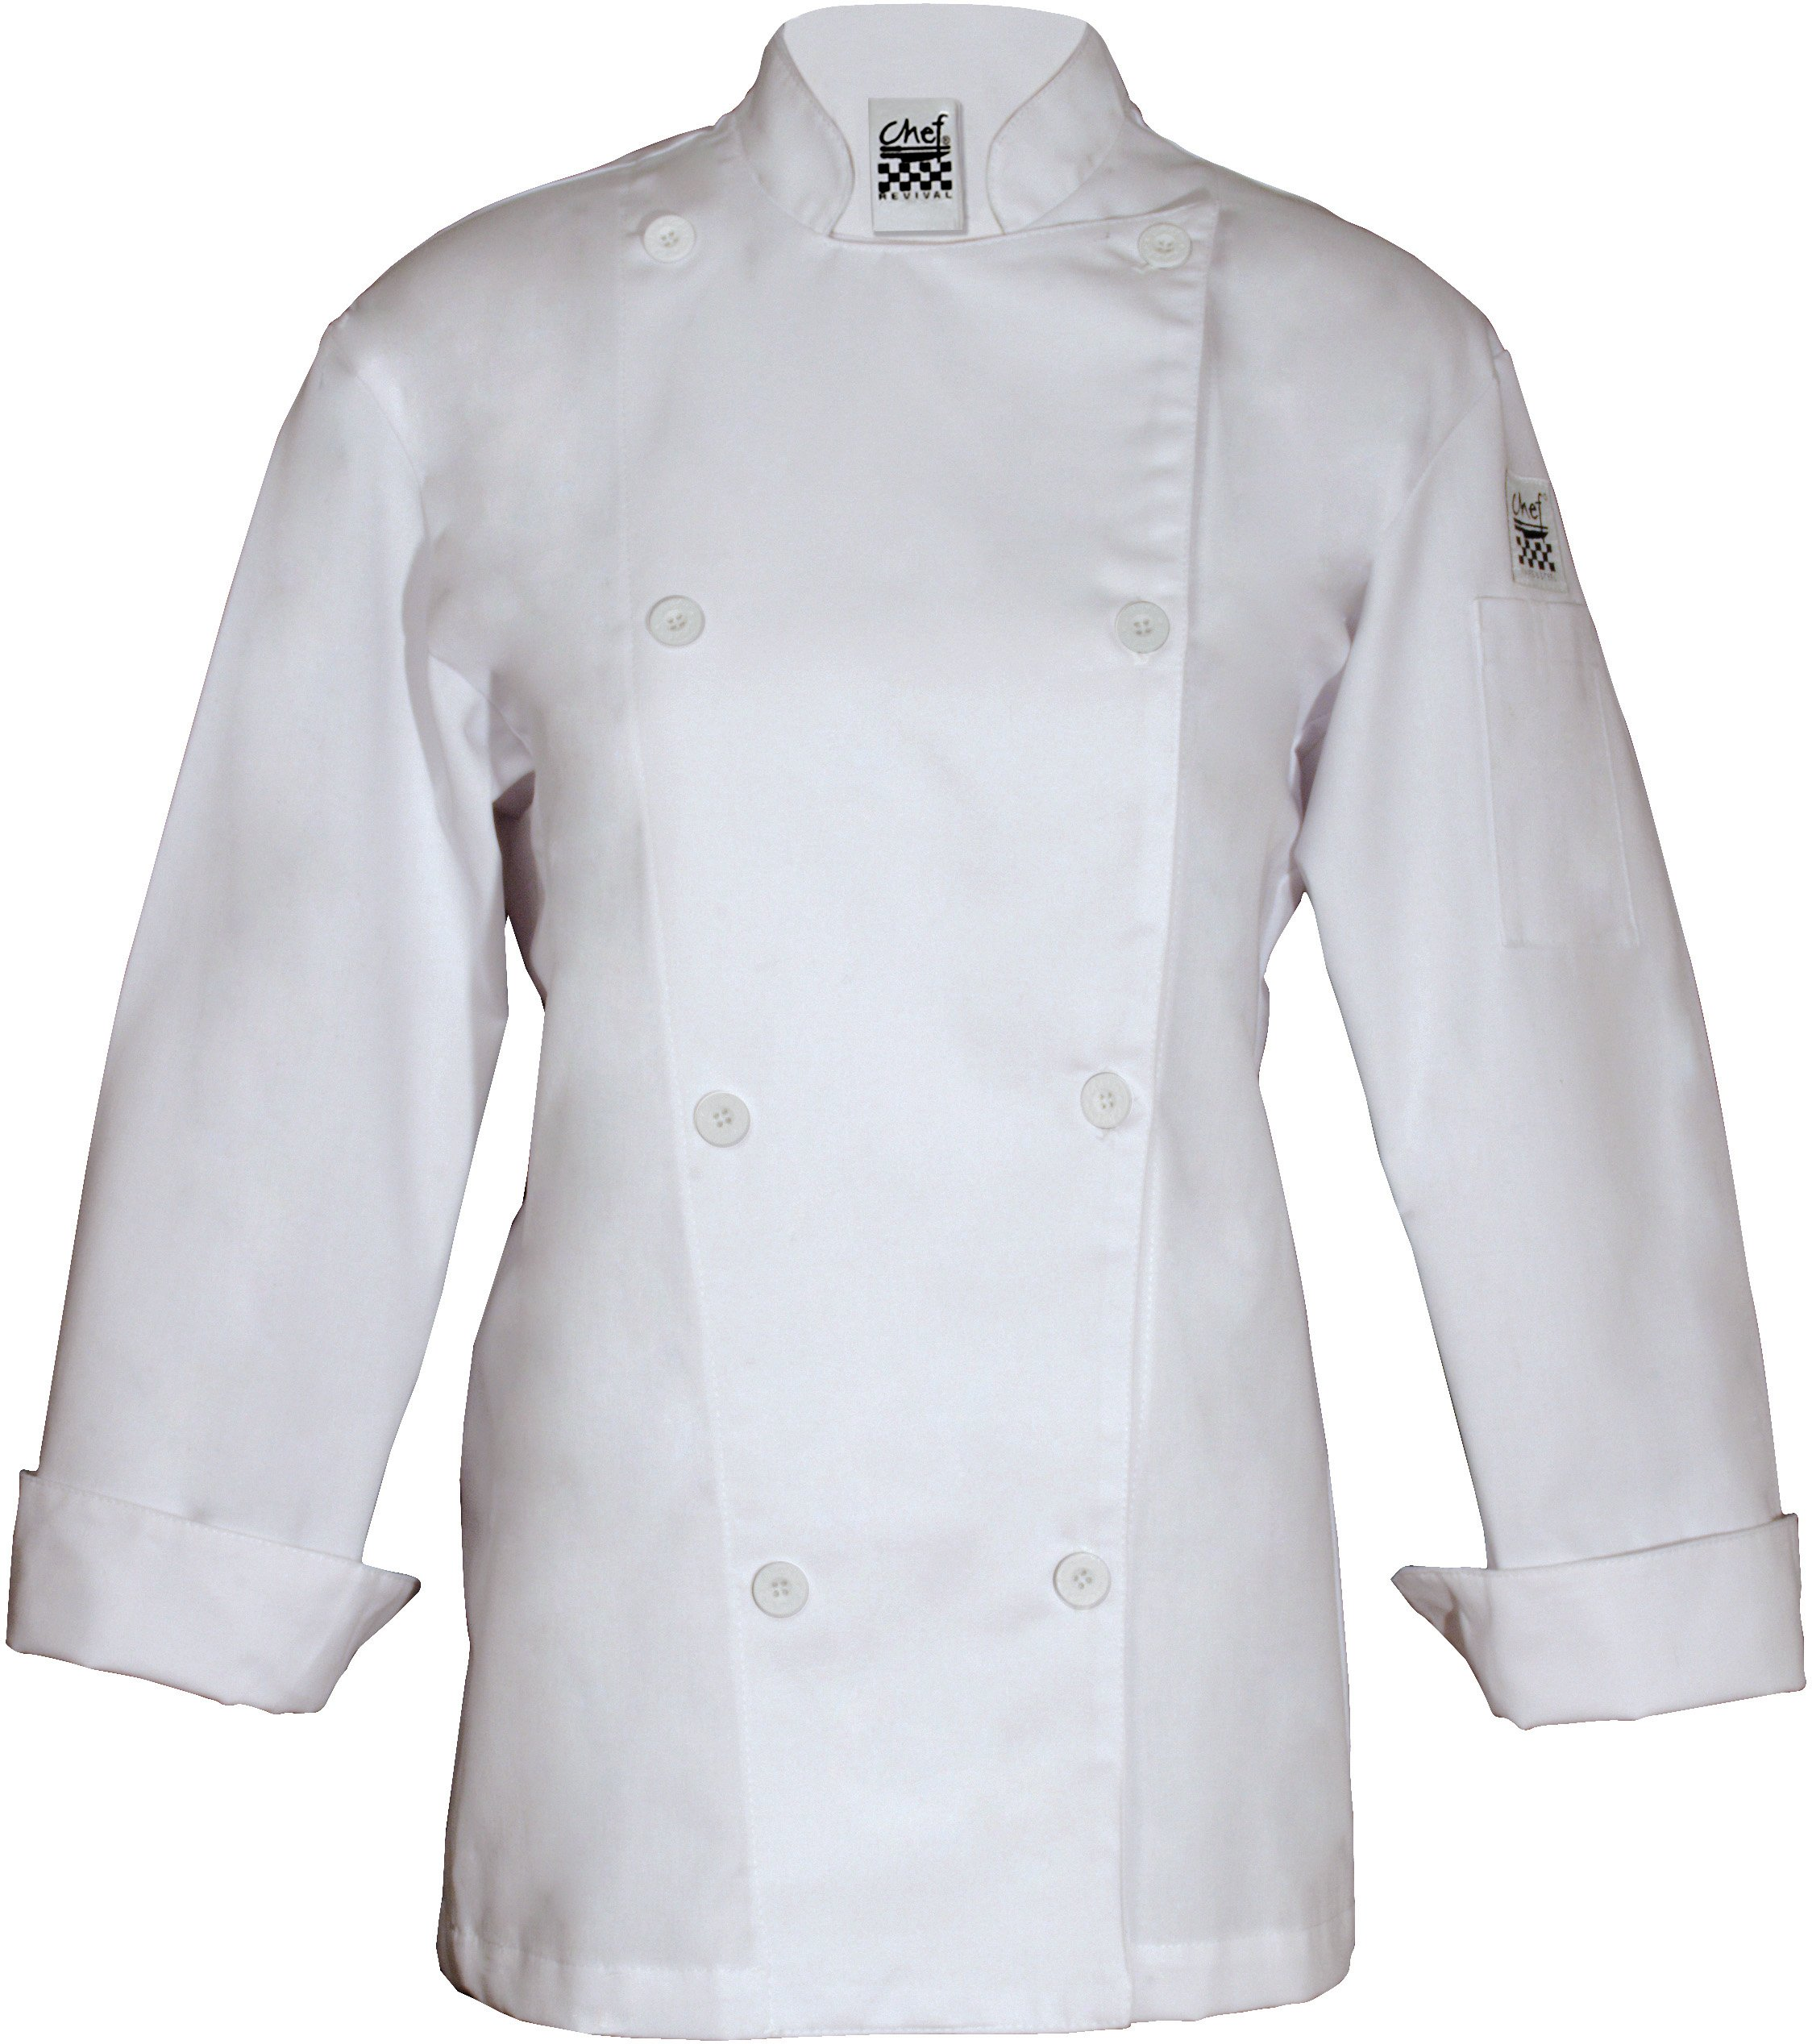 Chef Revival LJ027 Poly Cotton Ladies Knife and Steel Long Sleeve Jacket with White Chef Logo Button, 4X-Large, White